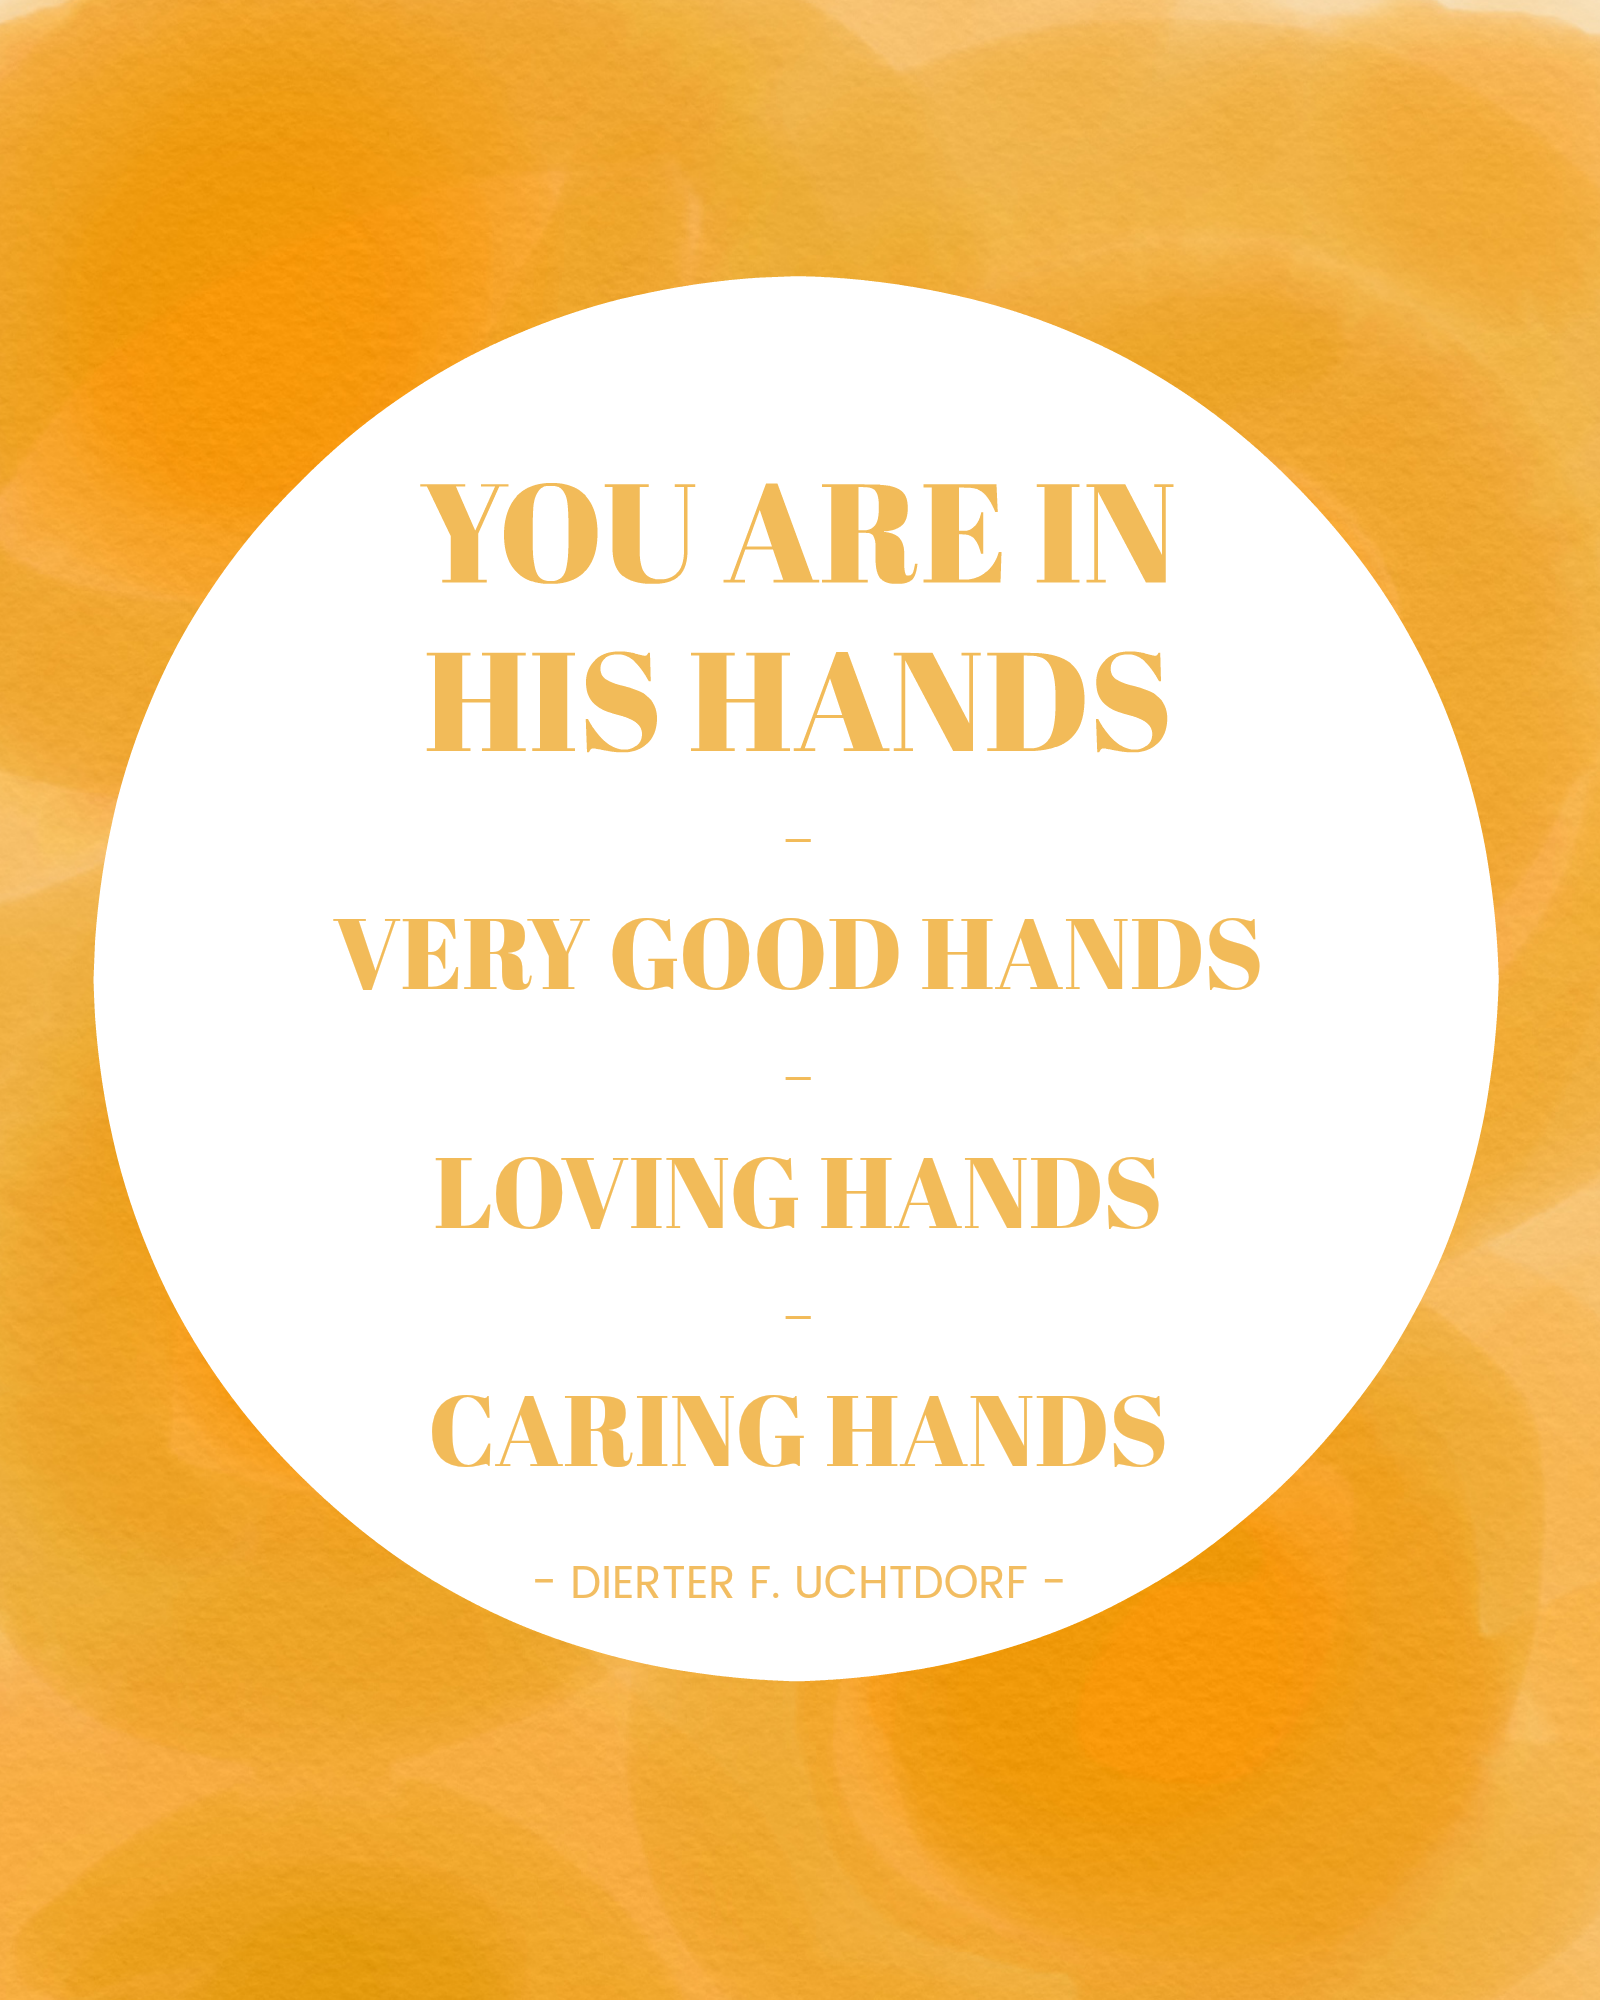 You are in his hands. Very good hands. Loving hands. Caring hands. - Dieter F. Uchtdorf | General Conference Quote | October 2017